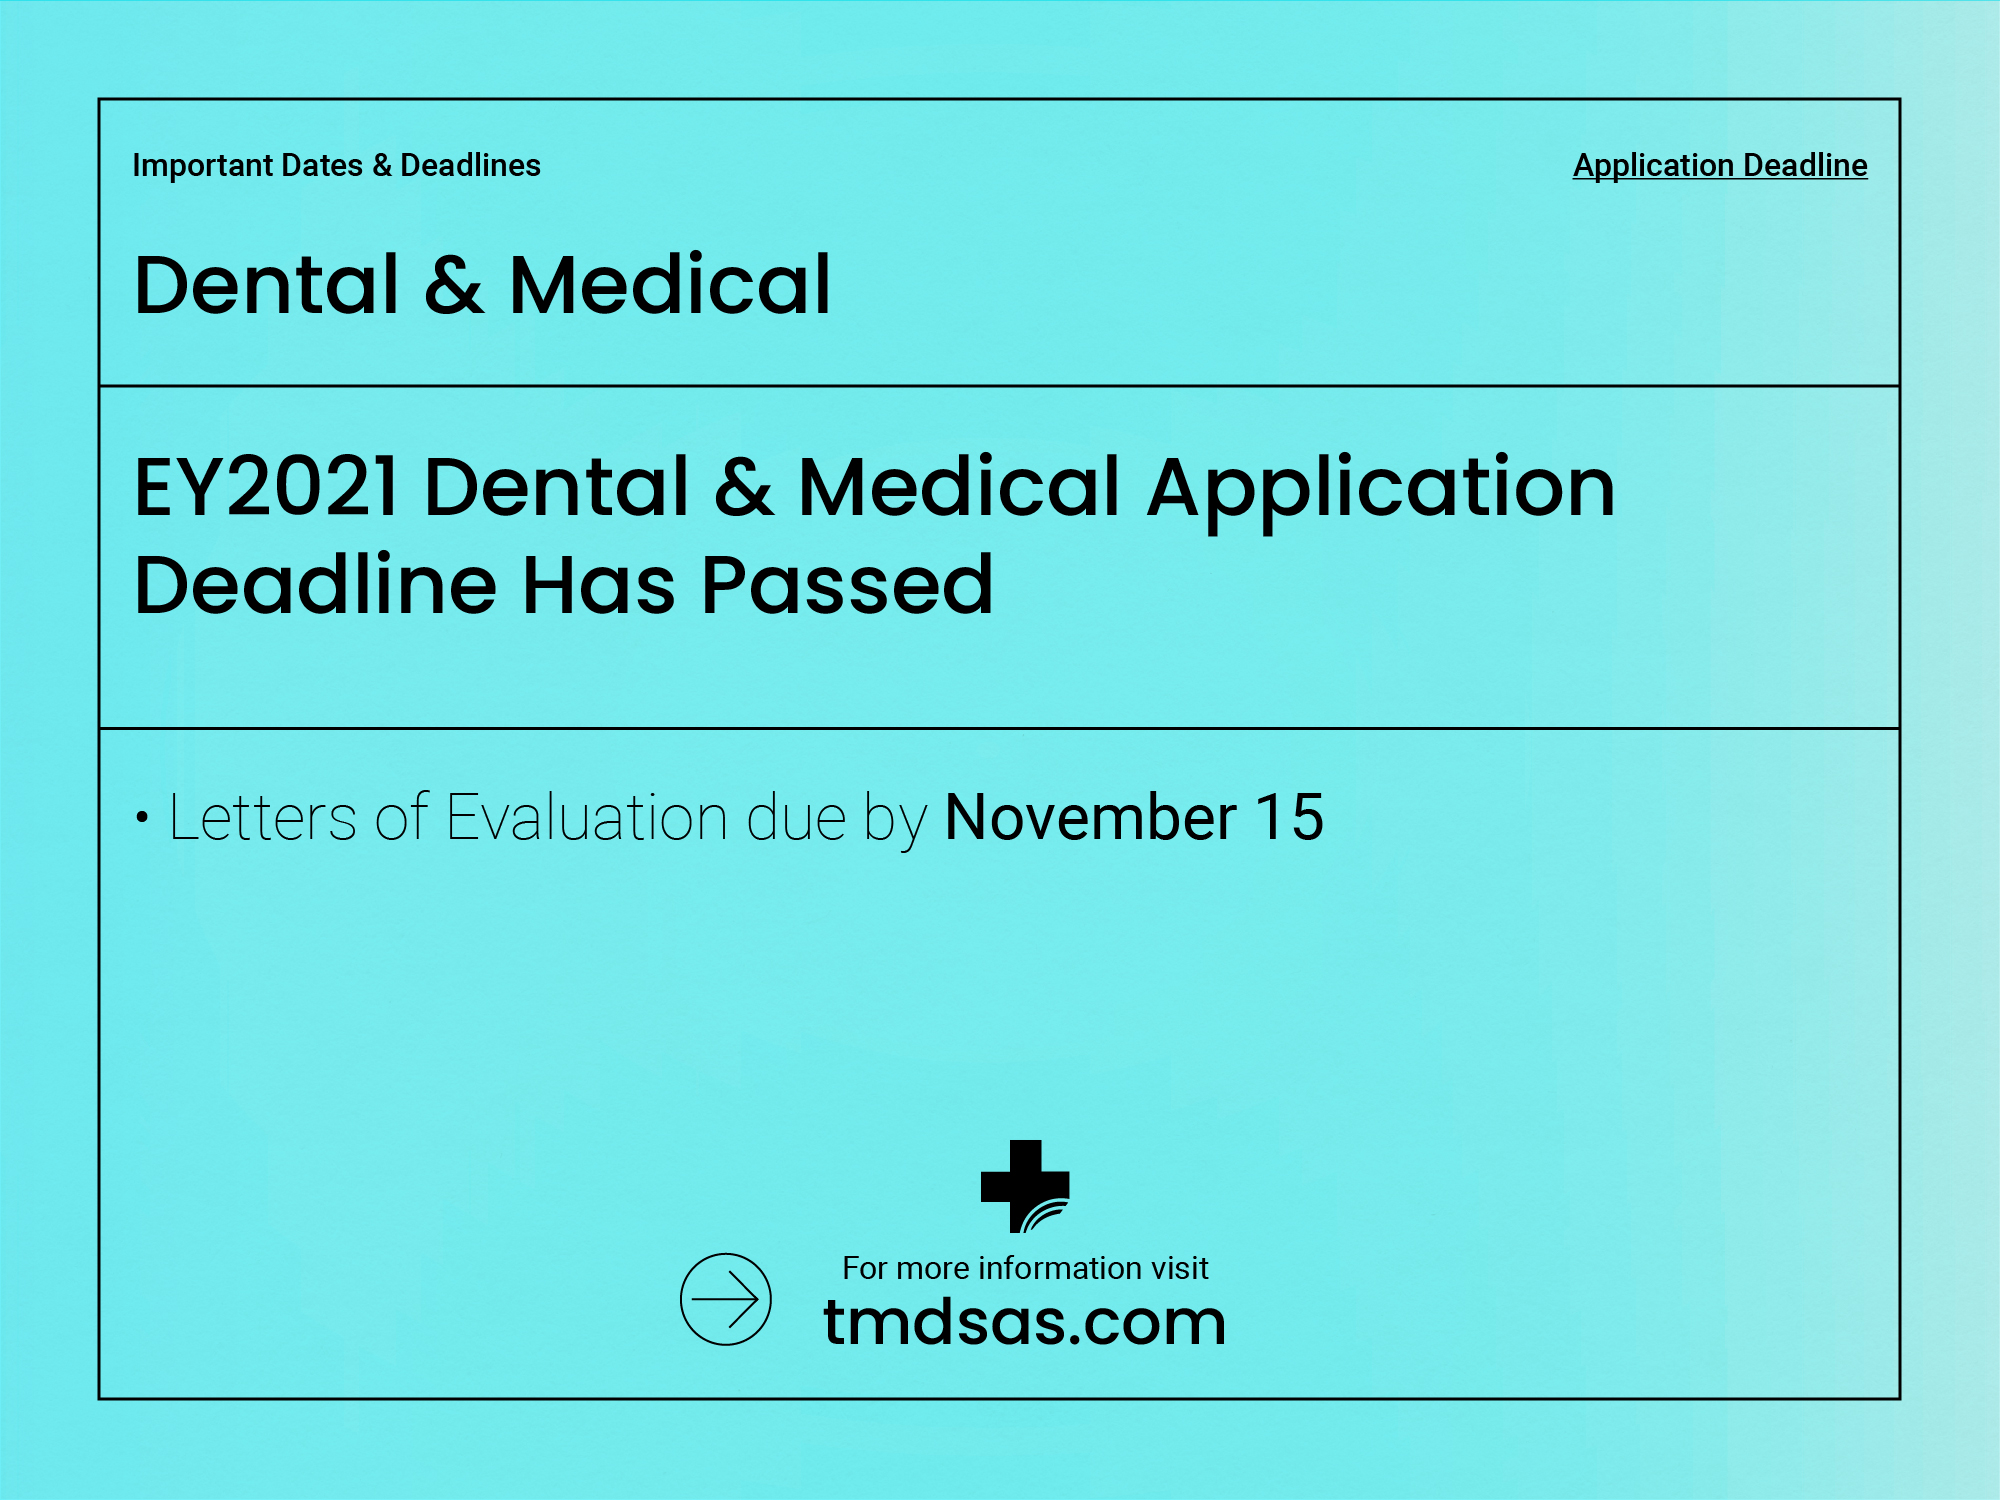 The deadline for EY2021 Dental and Medical Applicants has passed.